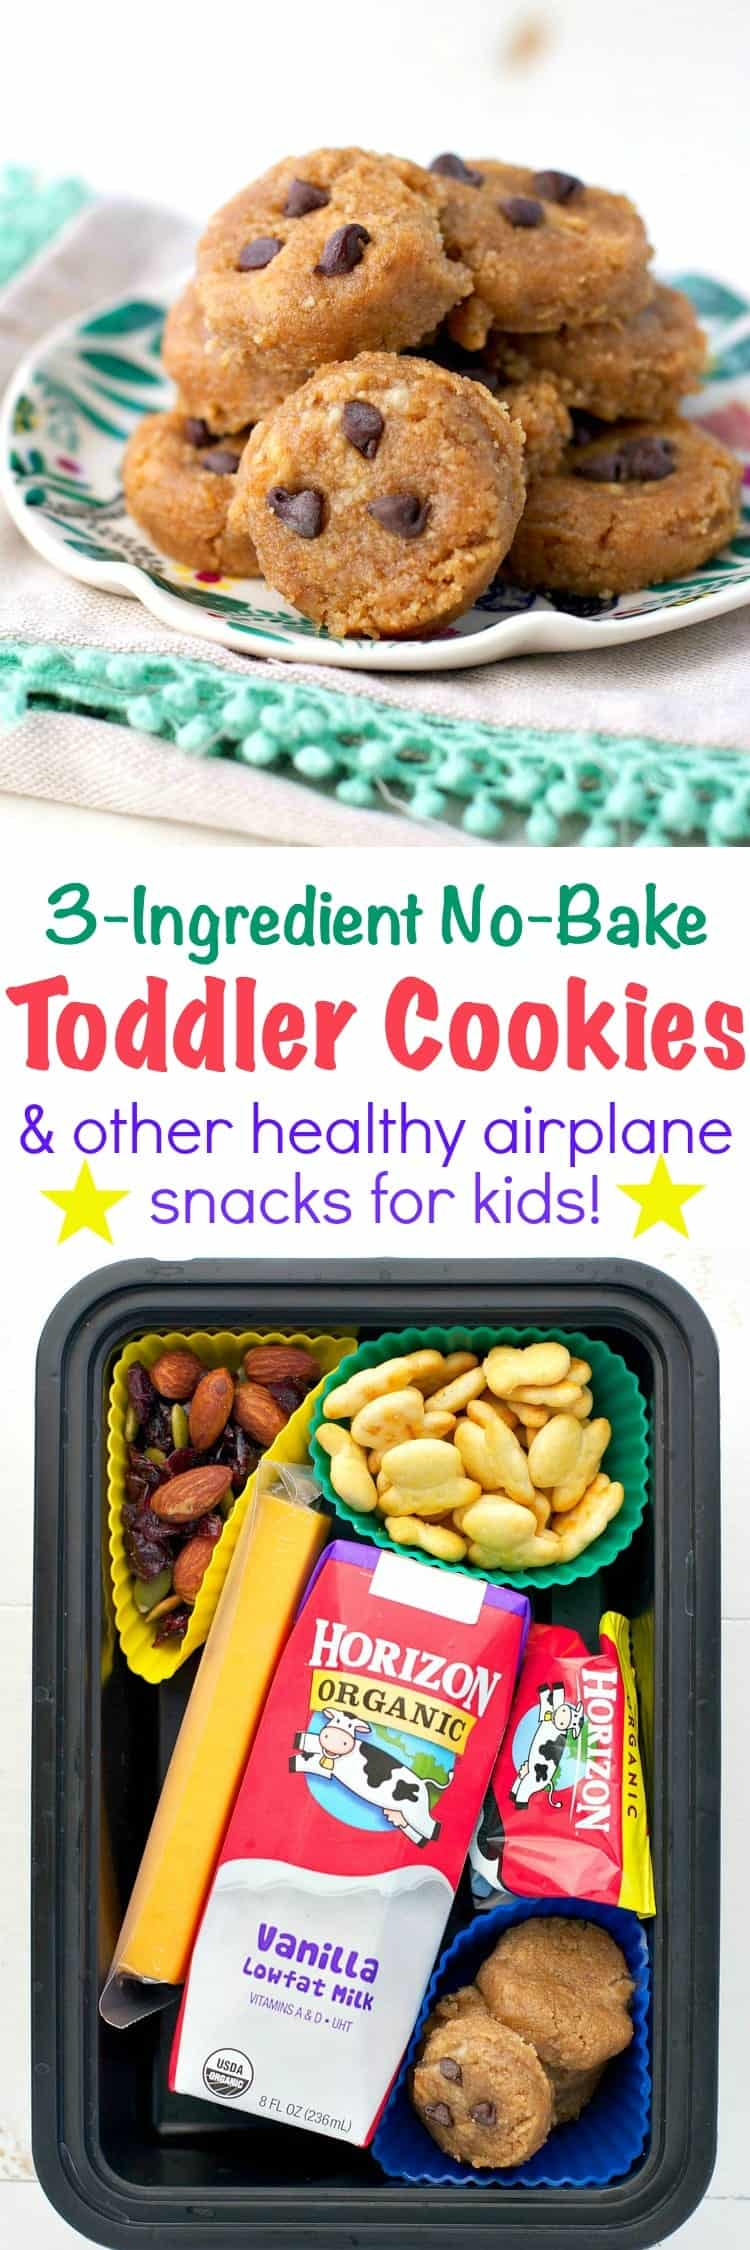 With just graham crackers, banana, and peanut butter, these 3-Ingredient No Bake Toddler Cookies are a perfect make-ahead option for lunch boxes, picnics, and summer travel.